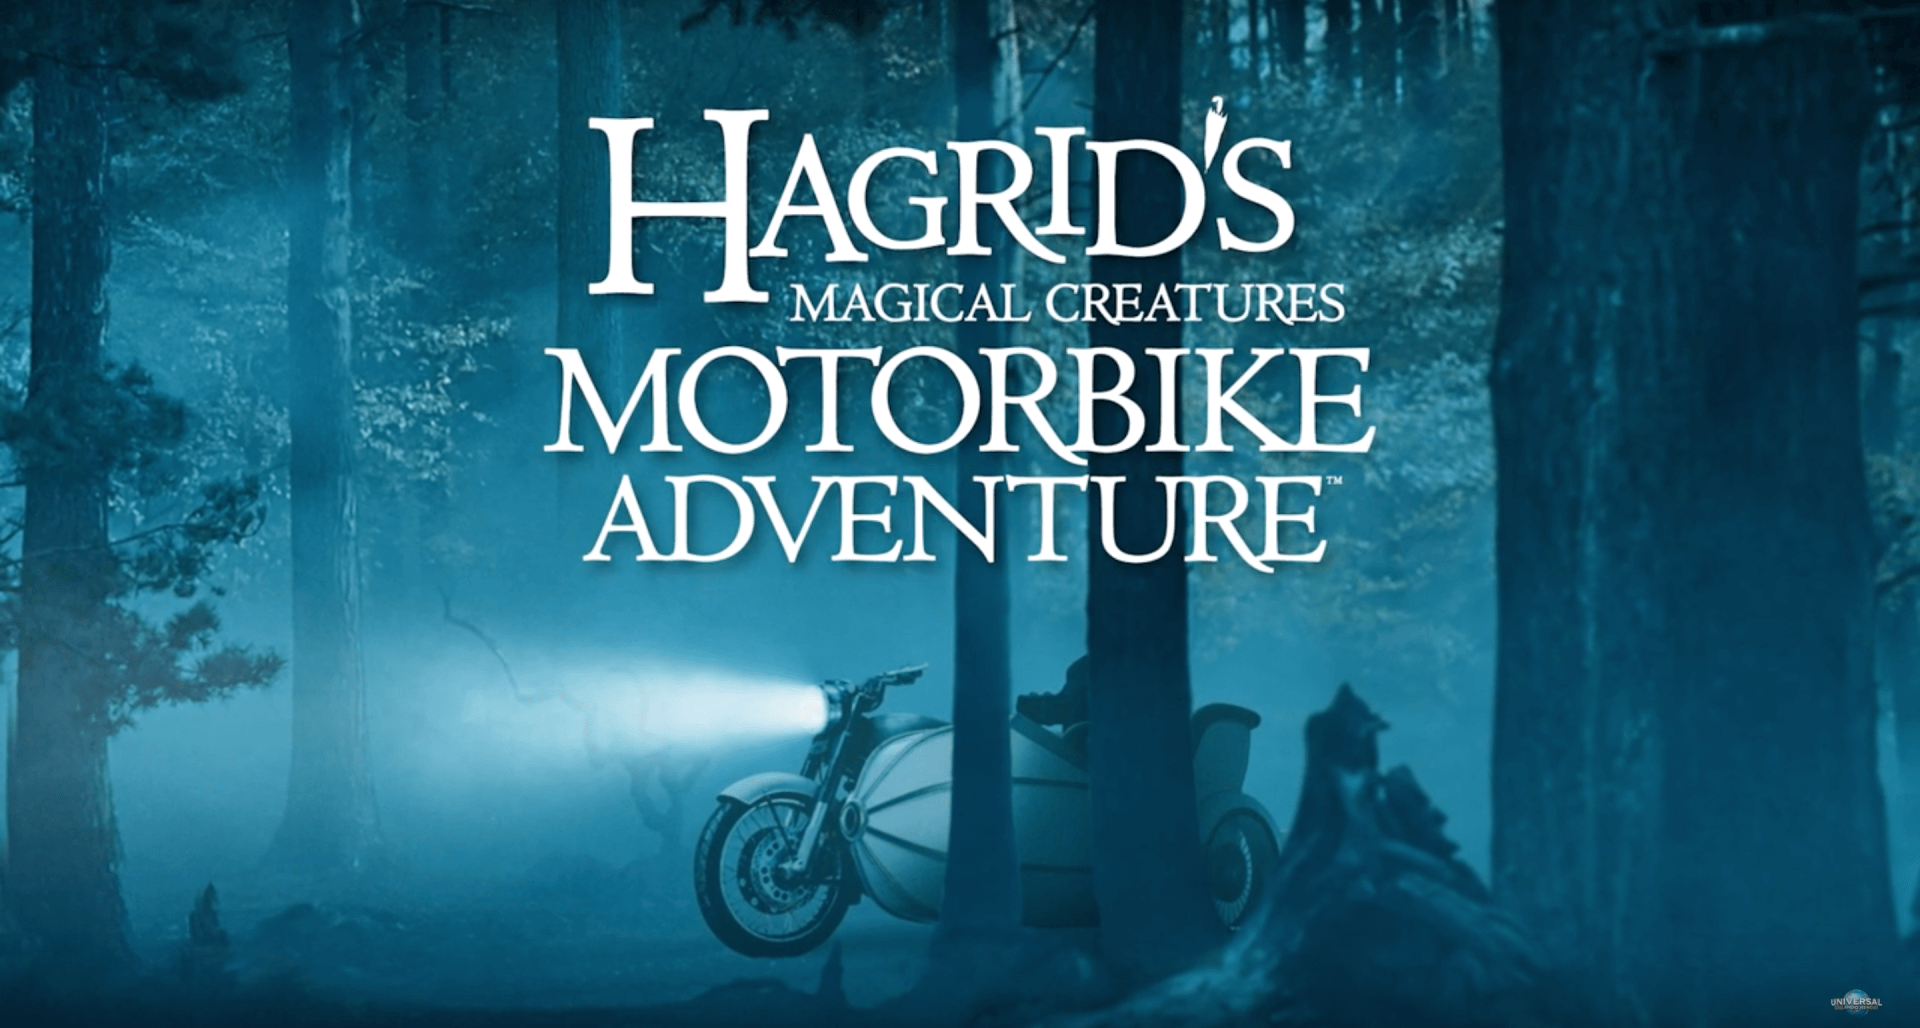 New Ride Vehicle Details Story Revealed Of Hagrid S Magical Creatures Motorbike Adventure Inside The Magic Hagrid Harry Potter Ride Magical Creatures